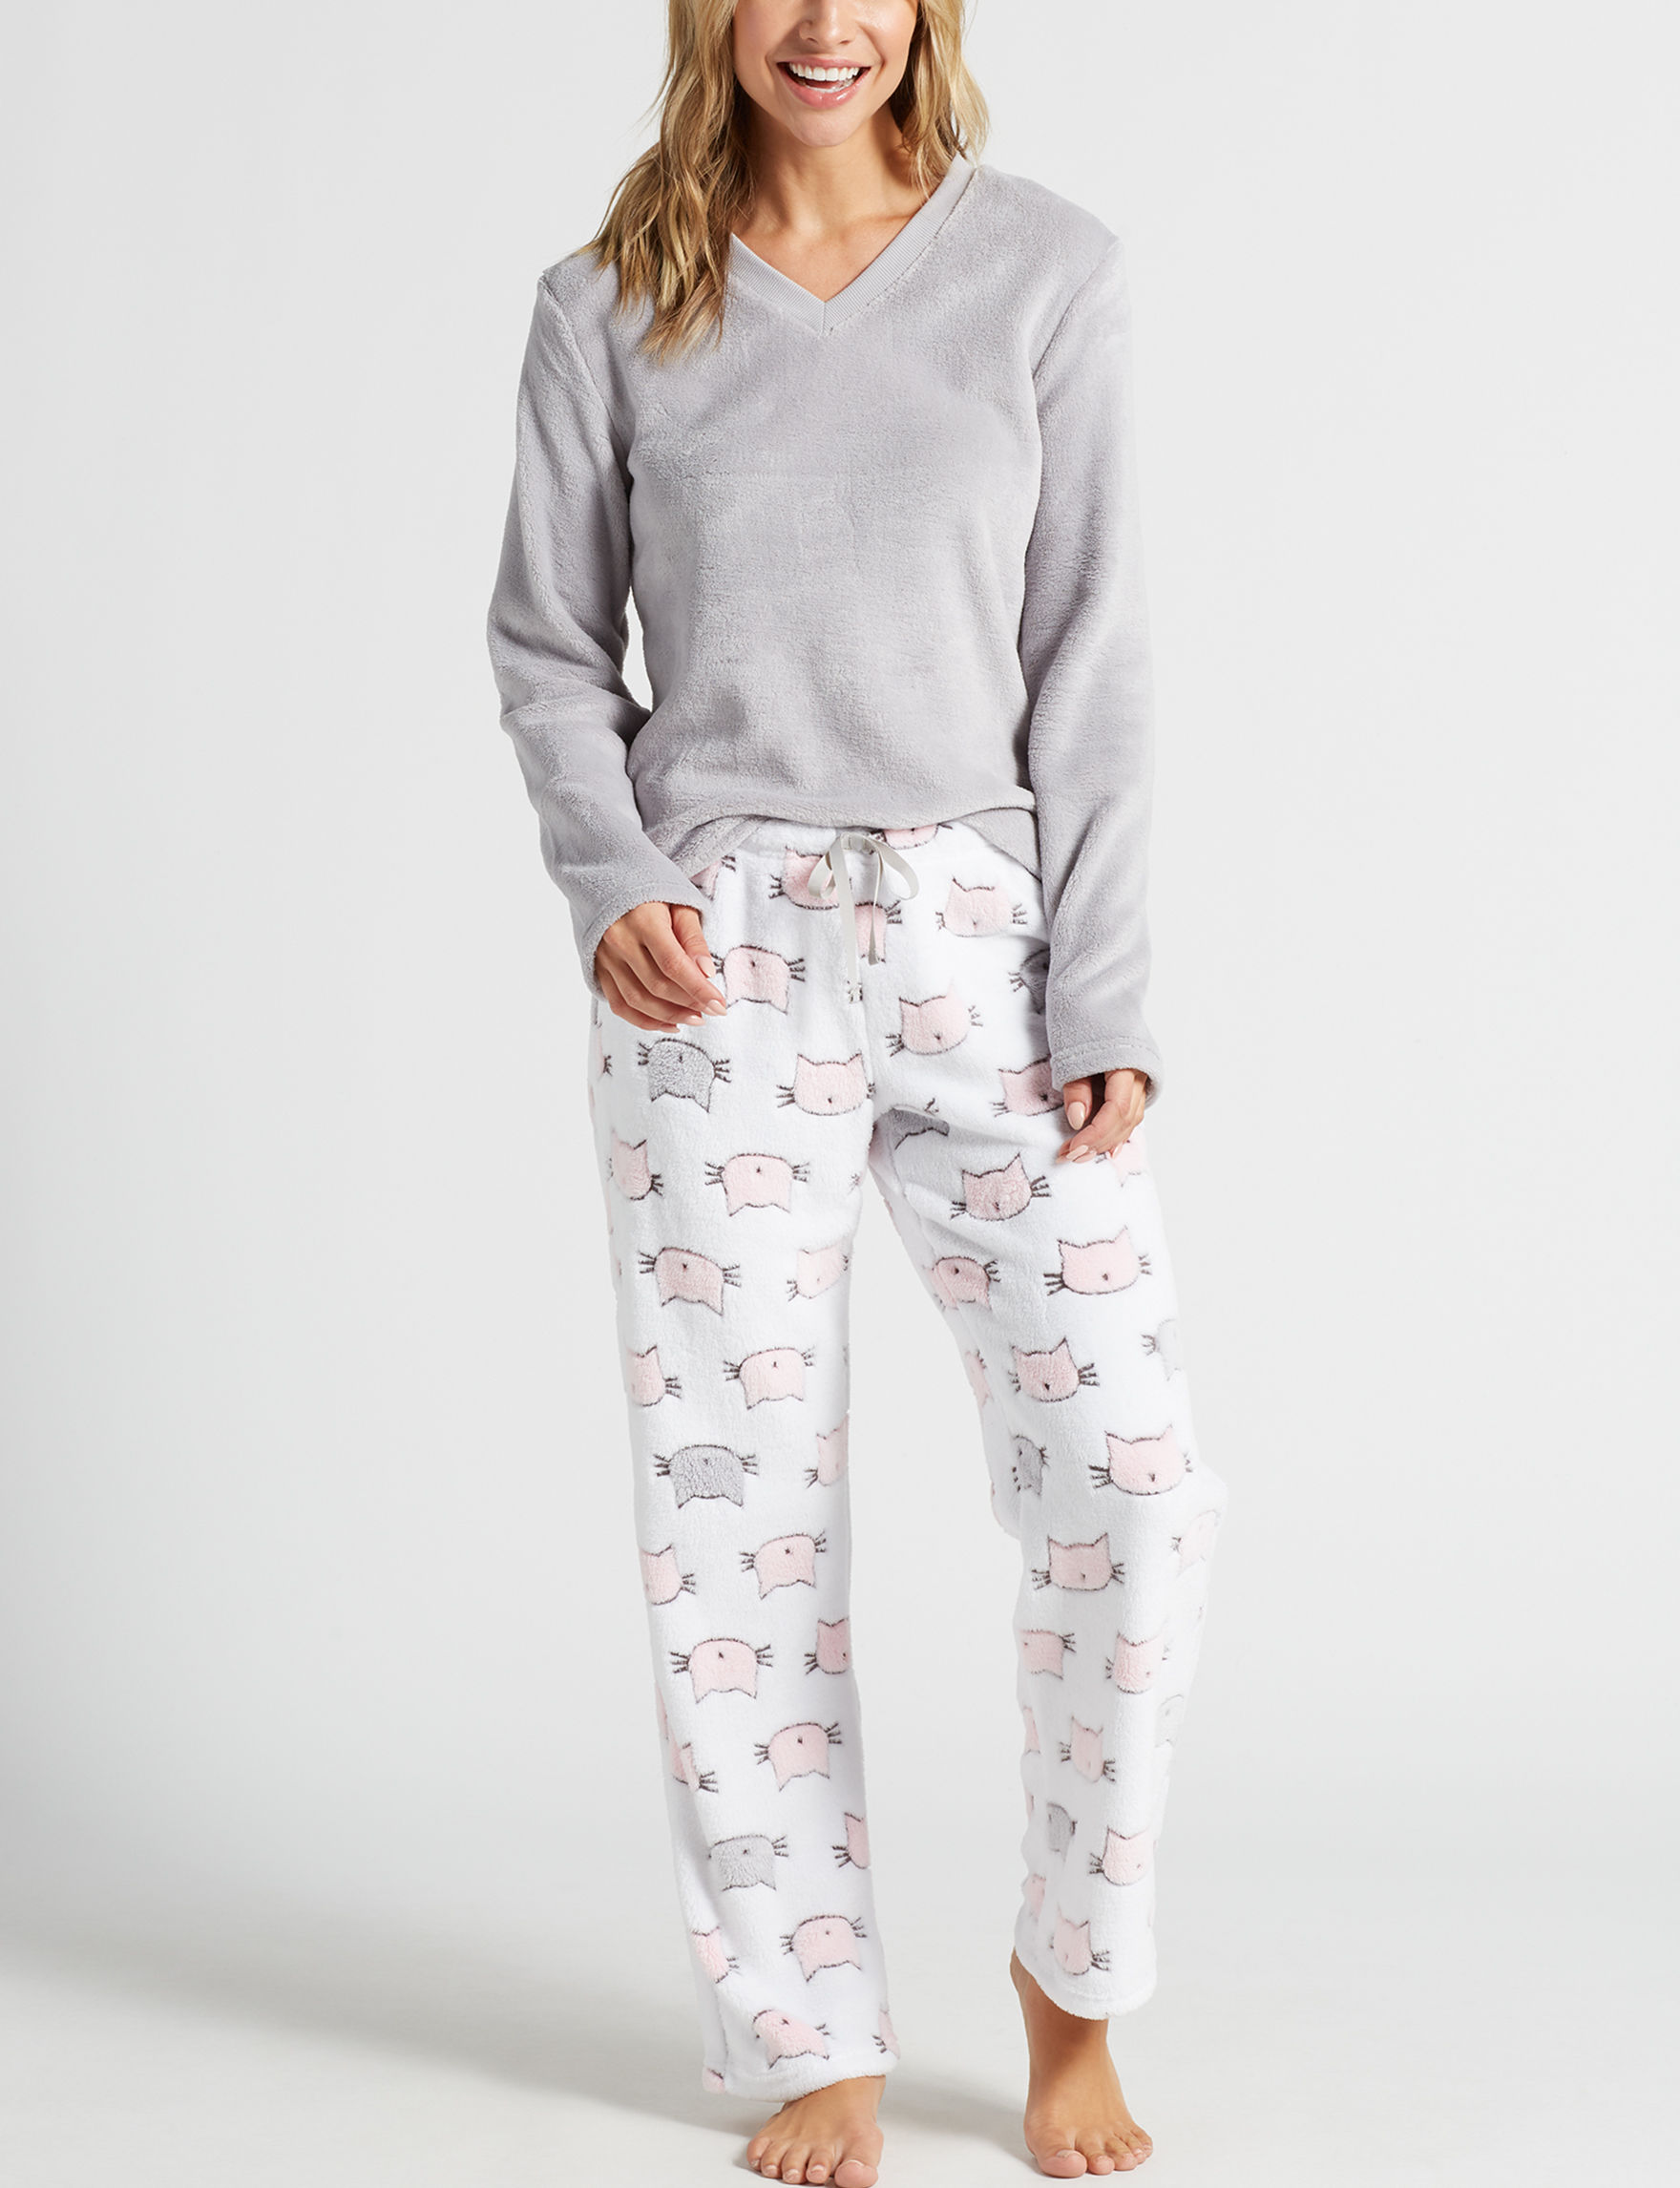 PJ Couture Grey Multi Pajama Sets